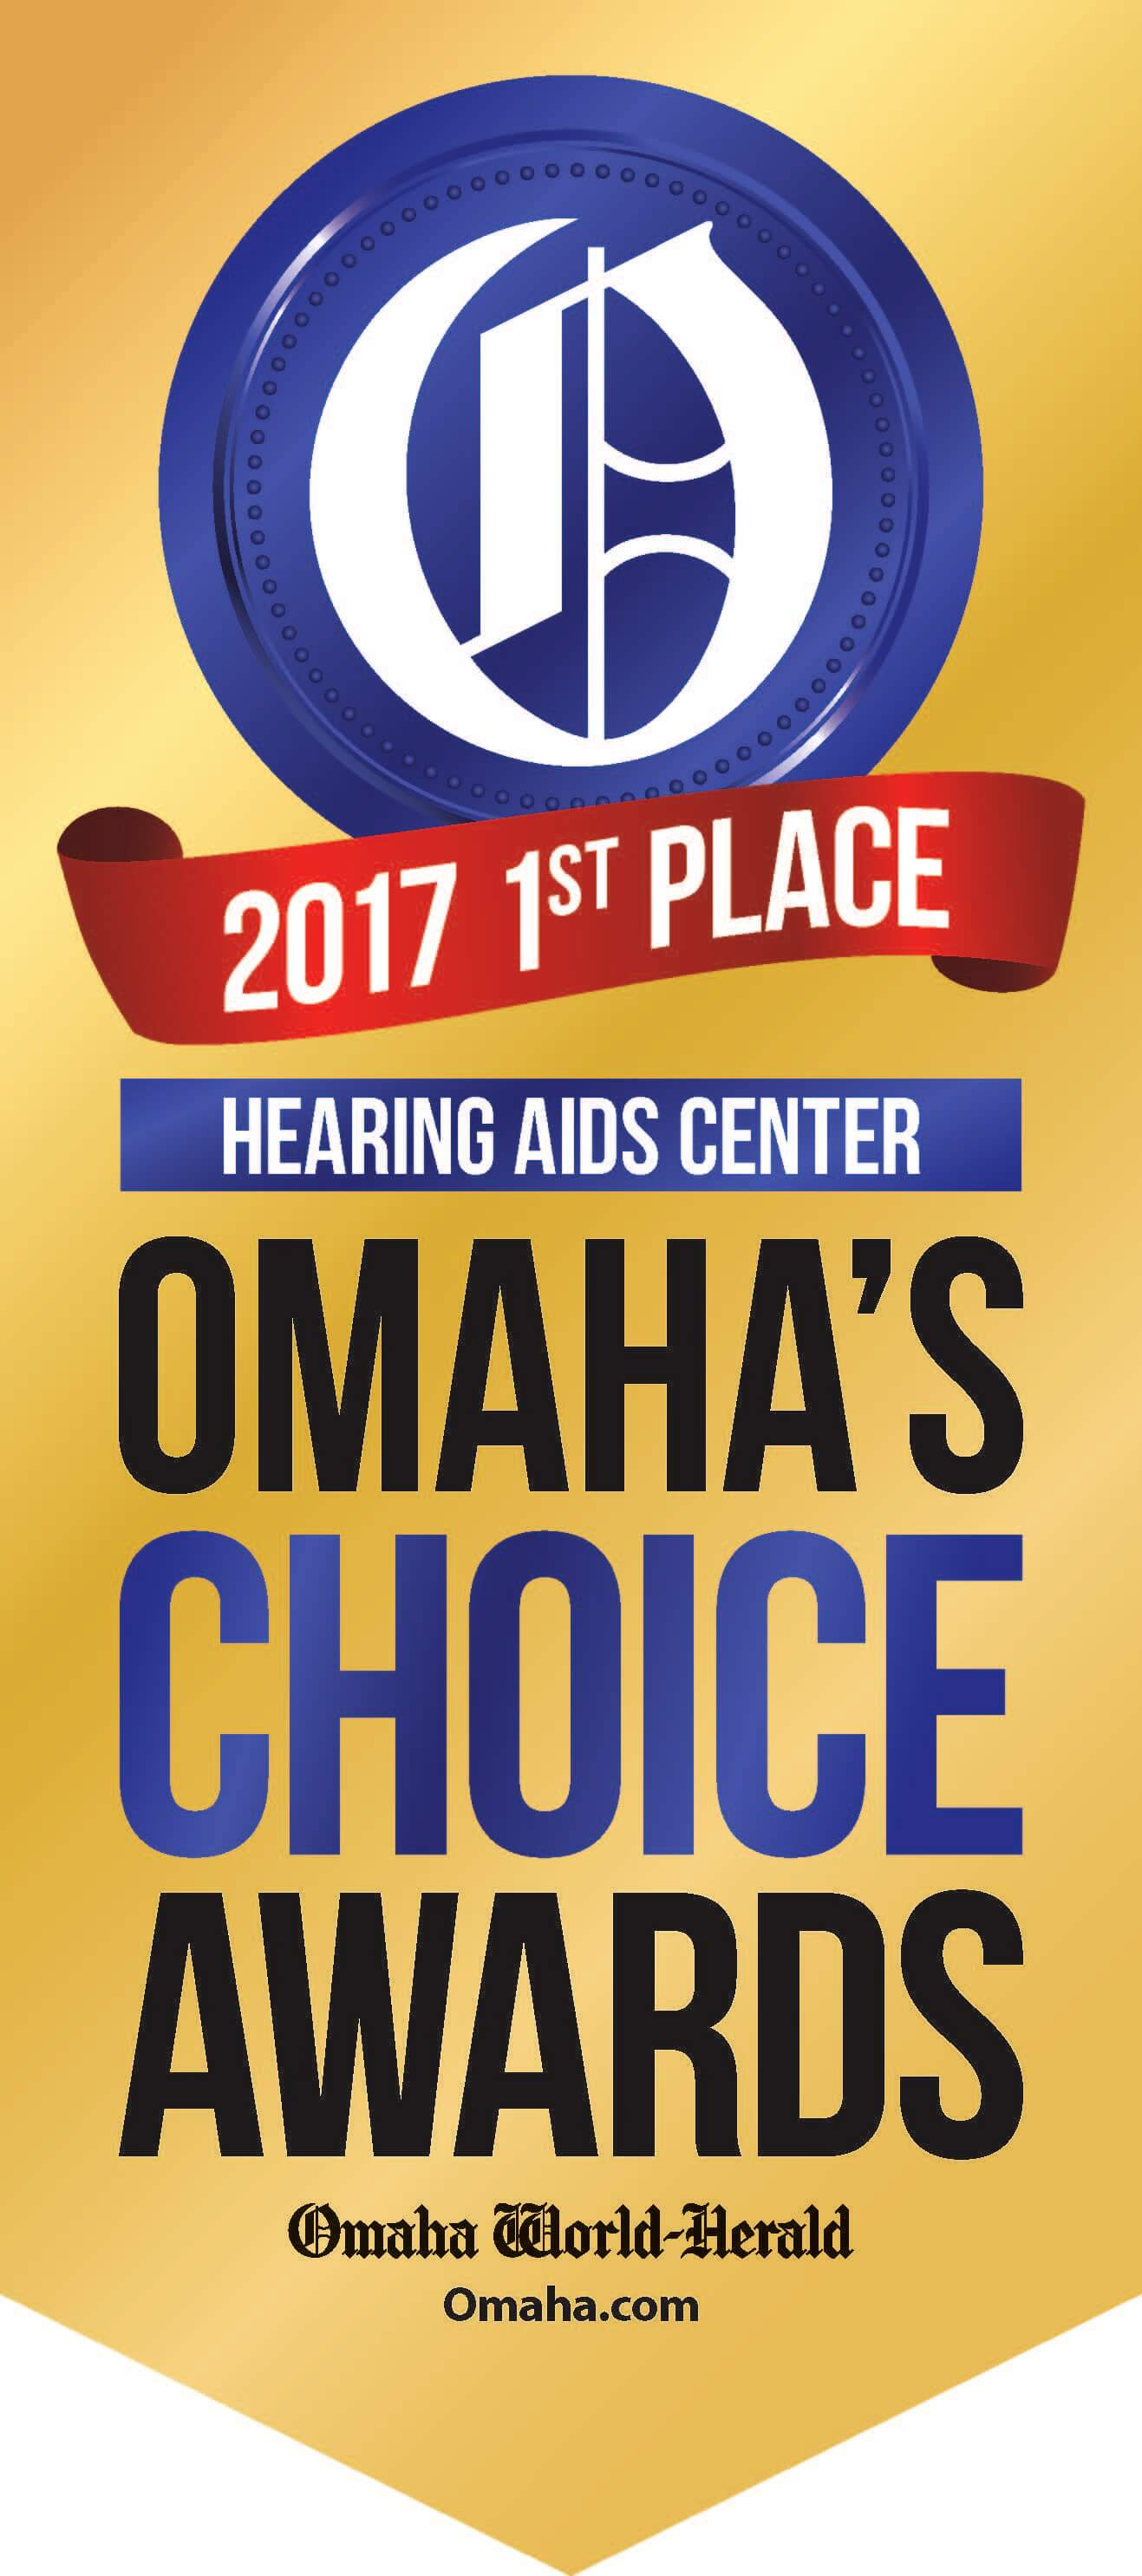 2017 Omahas Choice Awards 1st Place (Hearing Aids Center)(1)